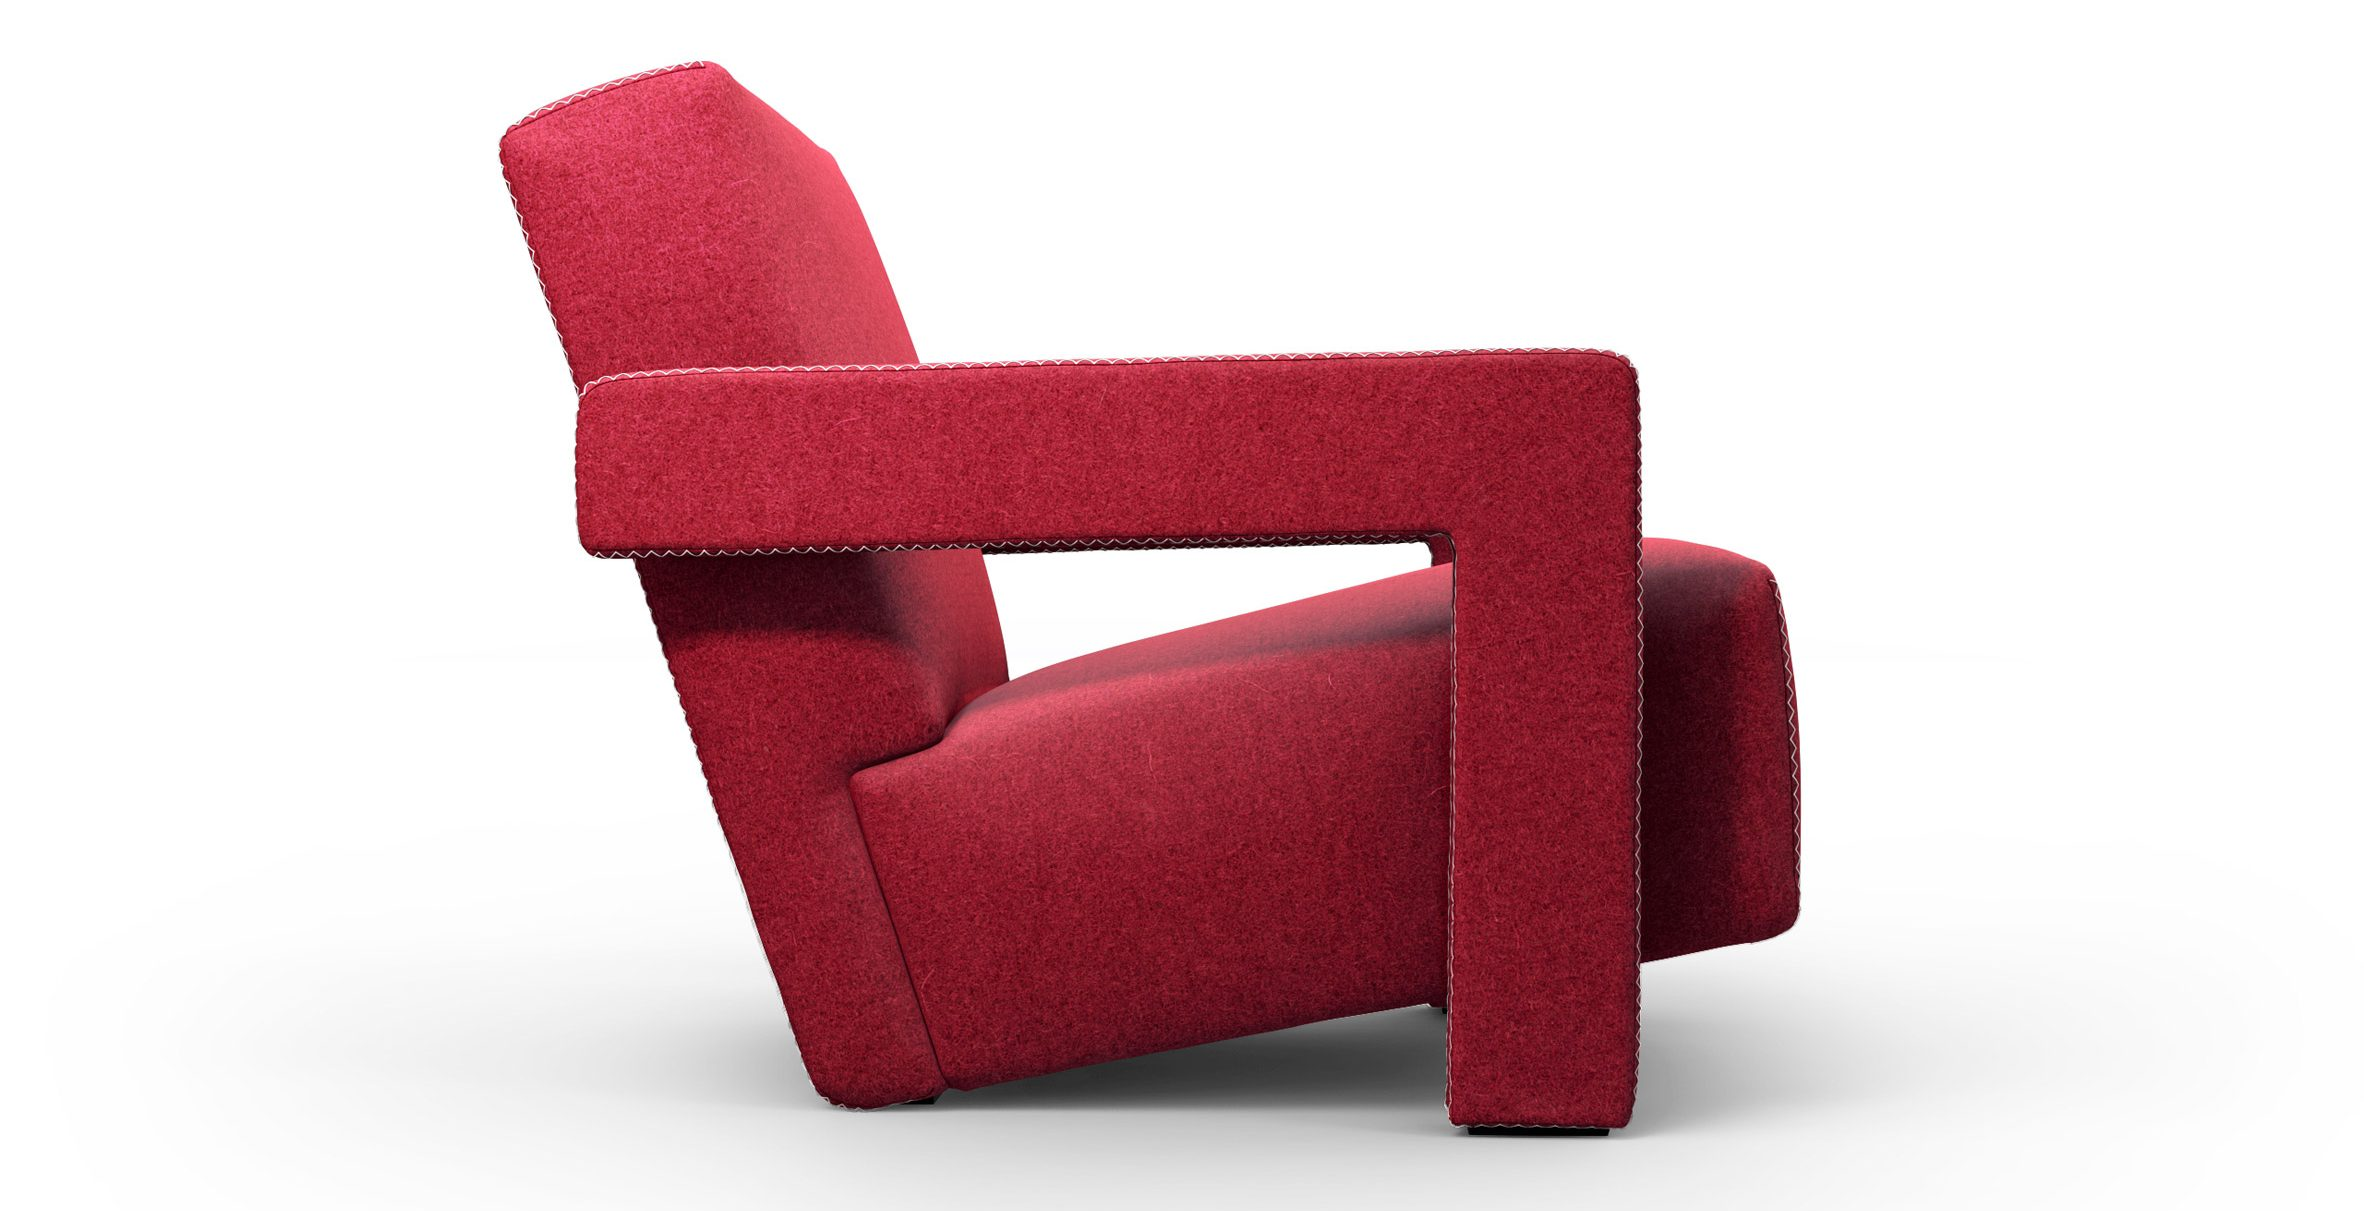 Side view of geometric red chair by Gerrit Thomas Rietveld for Cassina